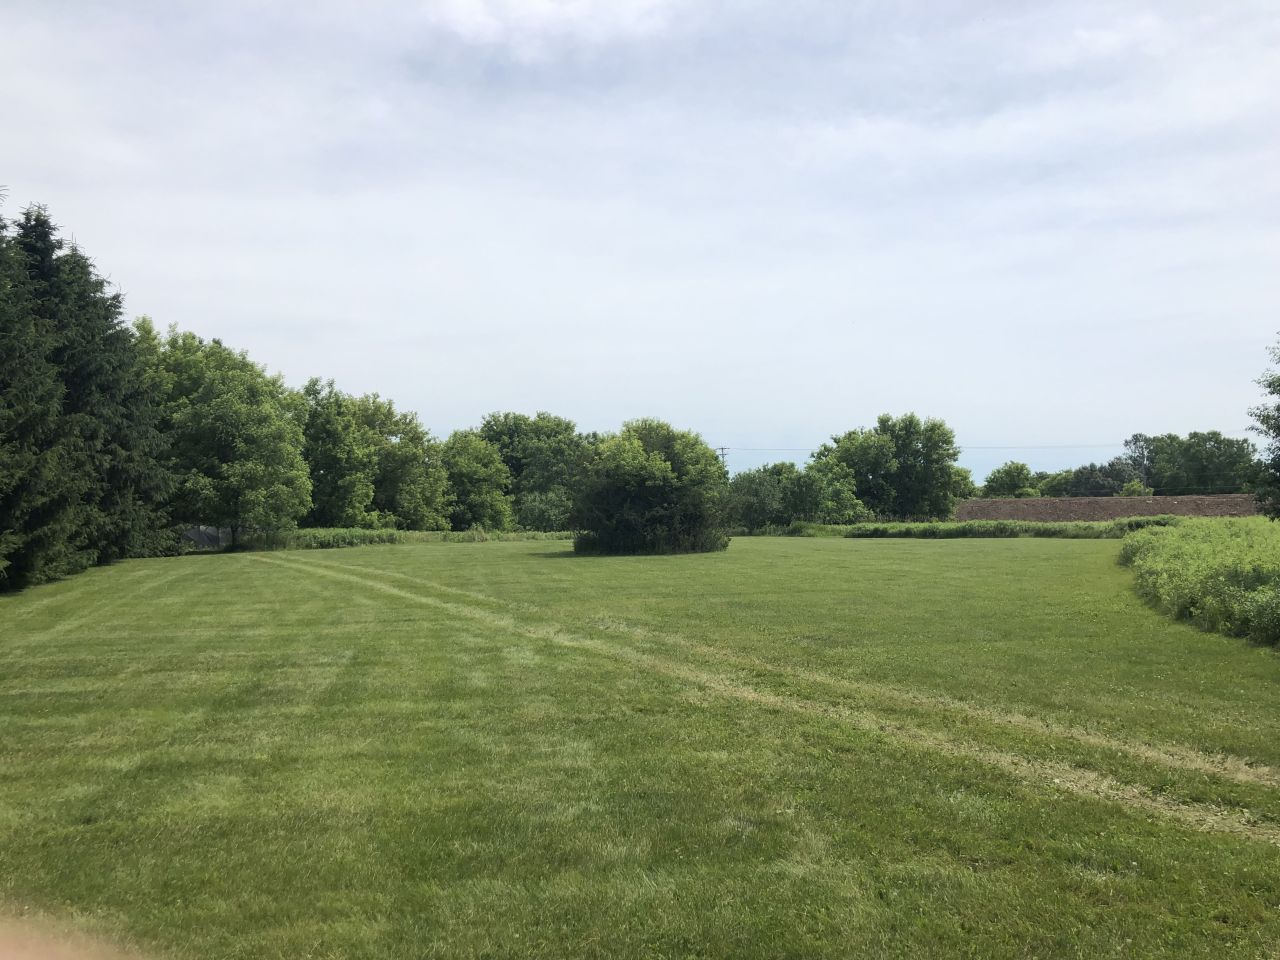 34600 Spring Bank Rd, Oconomowoc Lake, Wisconsin 53066, ,Vacant Land,For Sale,Spring Bank Rd,1644528